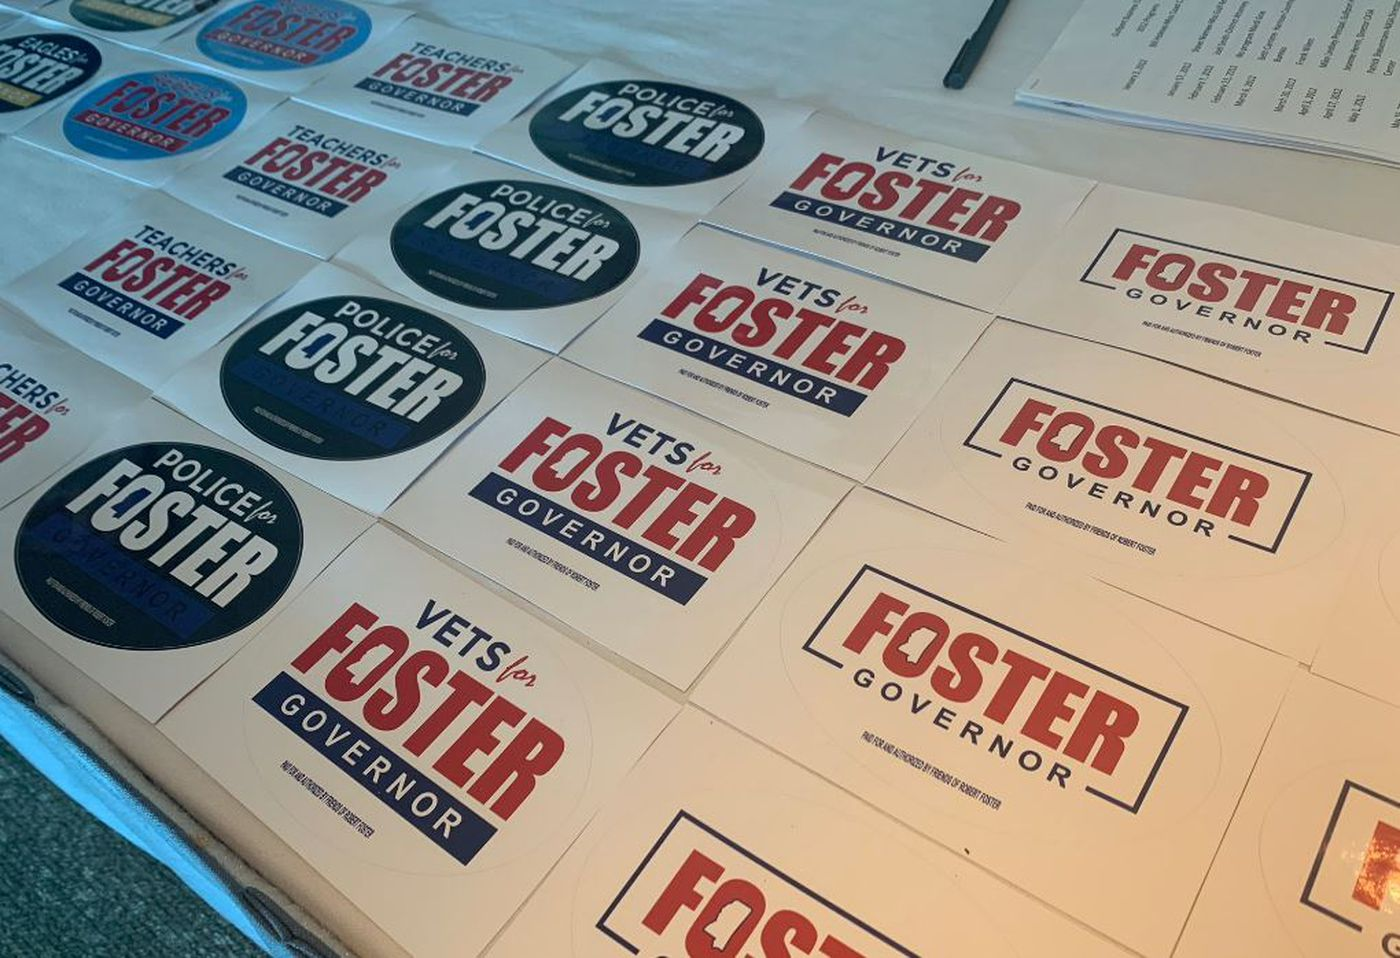 State Representative and gubernatorial Candidate Robert Foster's campaign stickers. (Photo Source: WLOX)